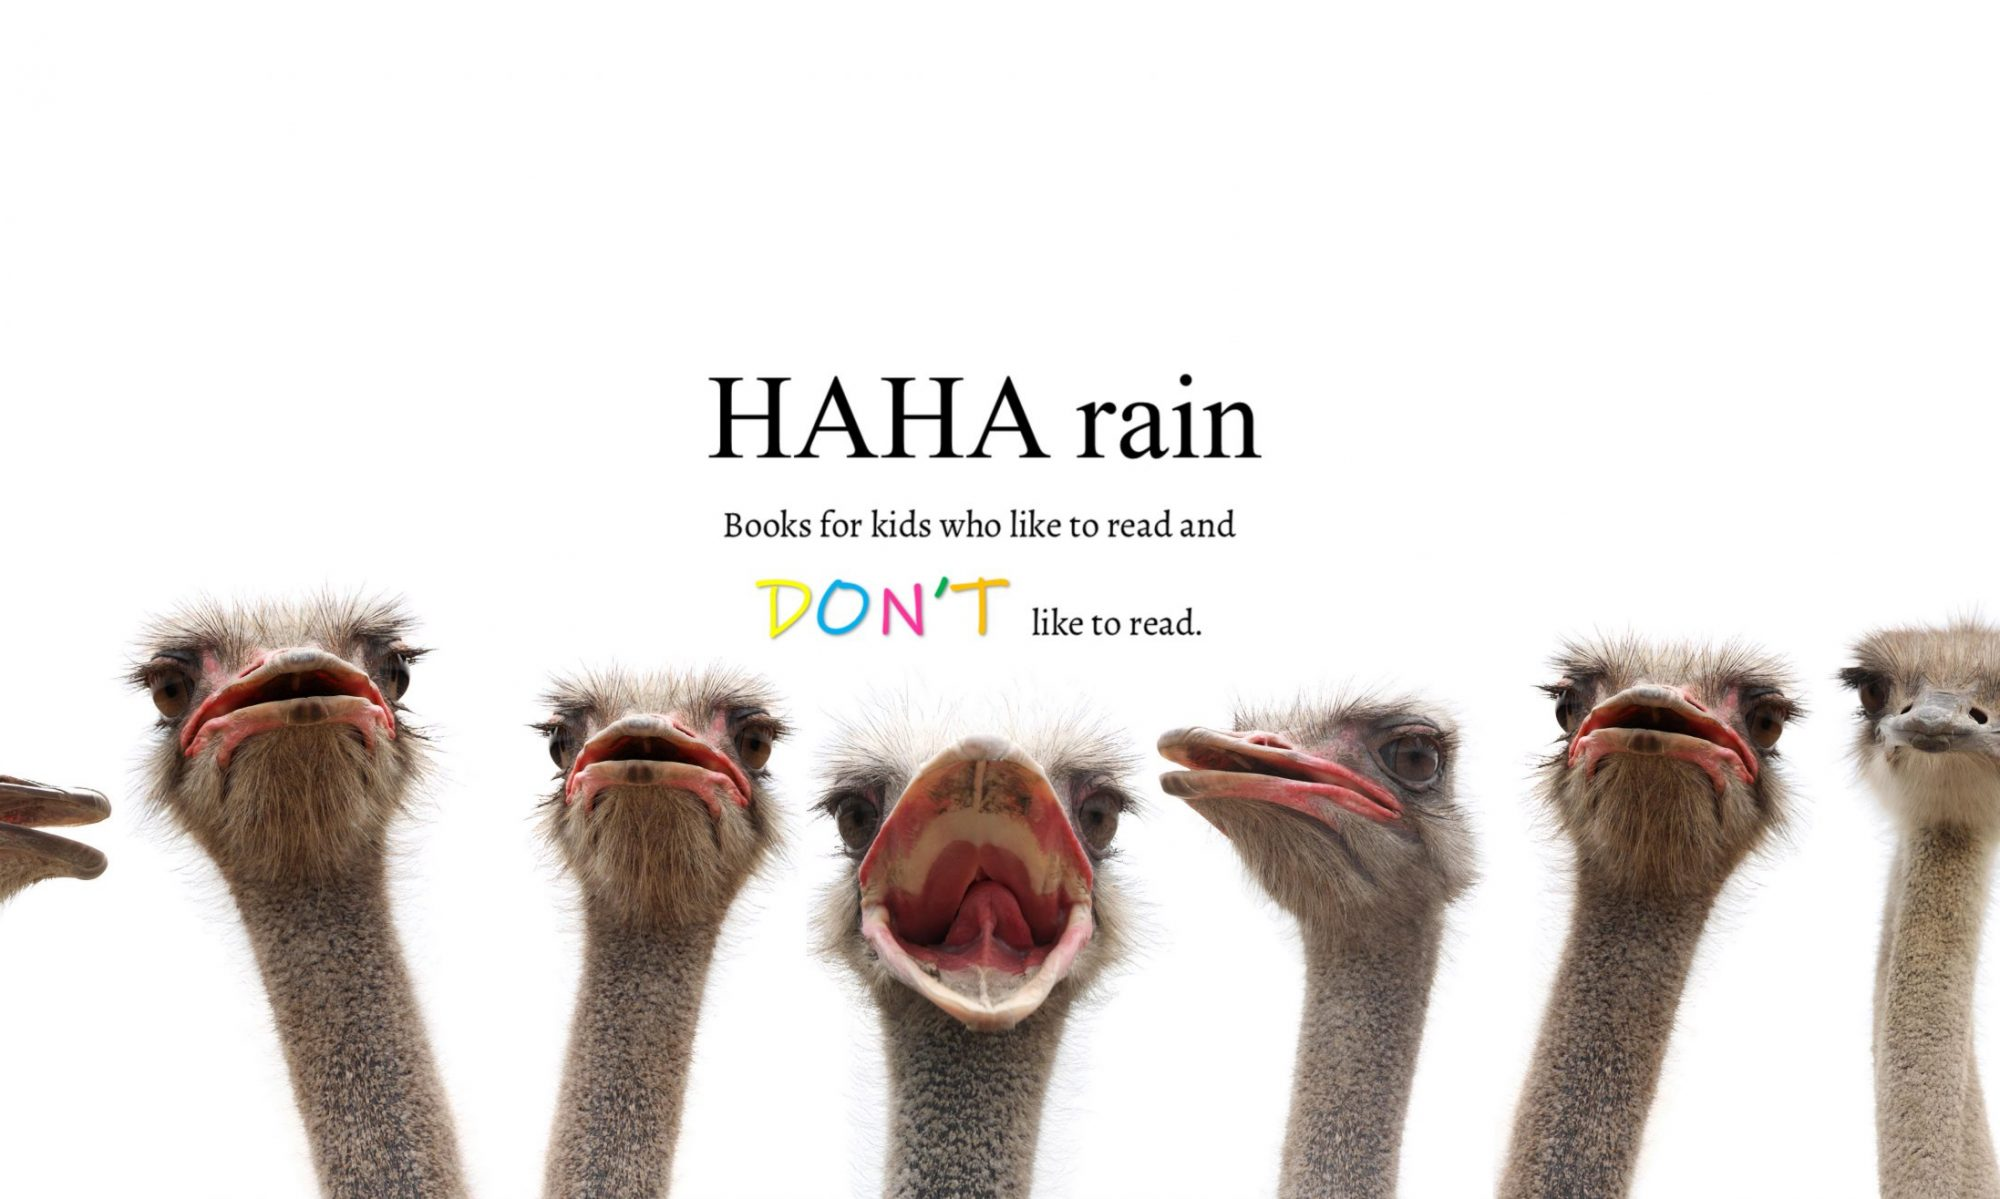 HAHA rain - Books for kids who like to read and don't like to read